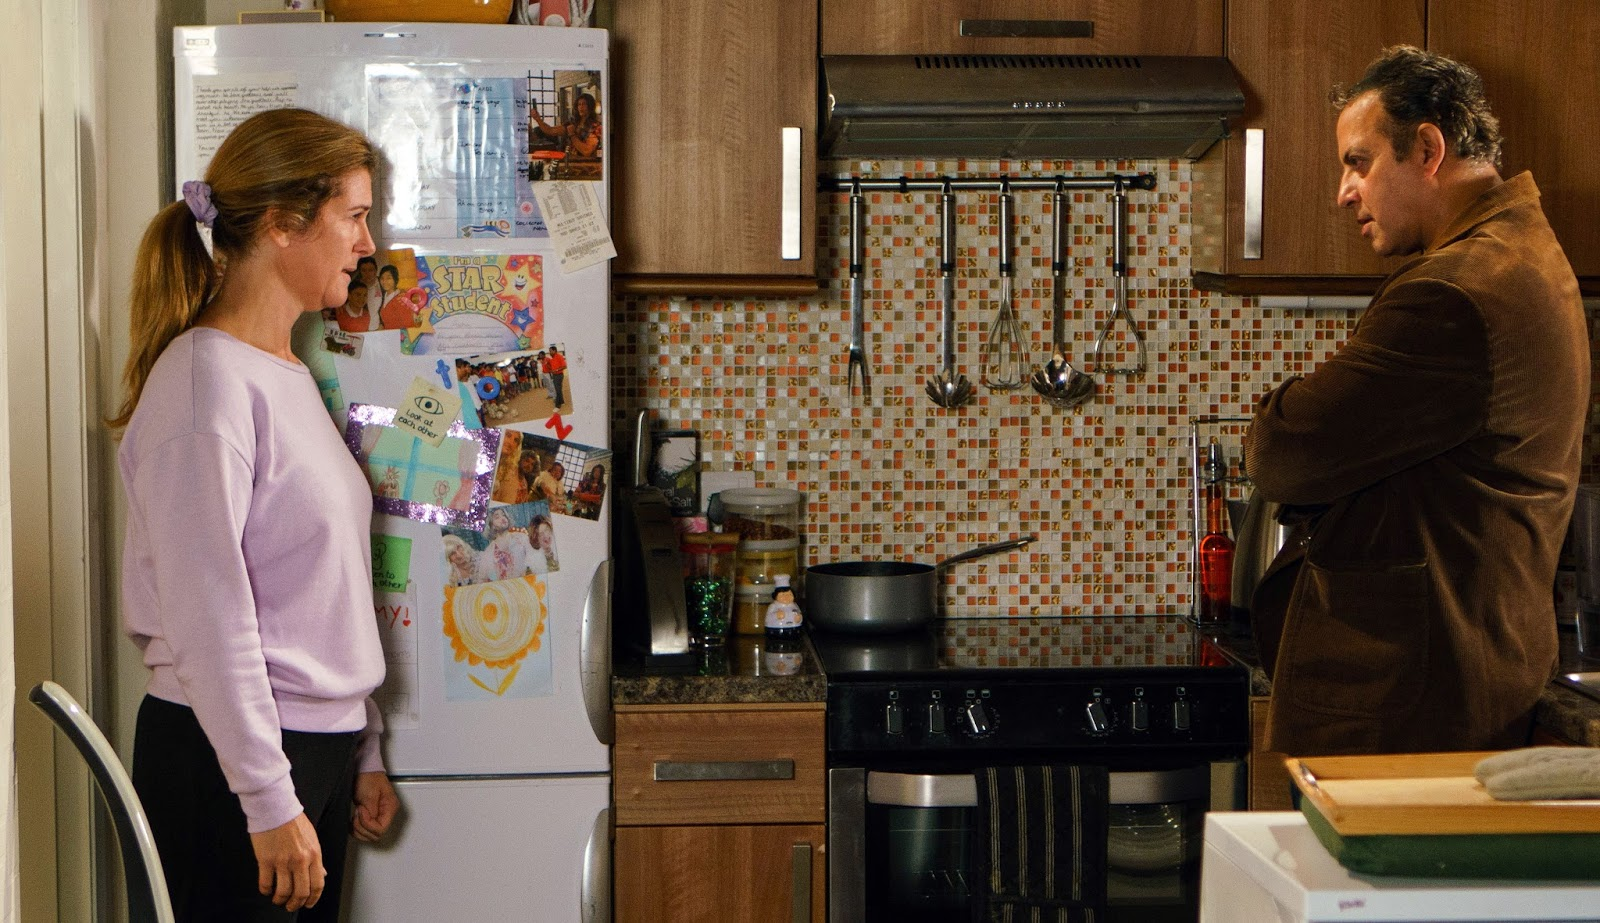 Coronation Street Blog: Preview of tonight's Coronation